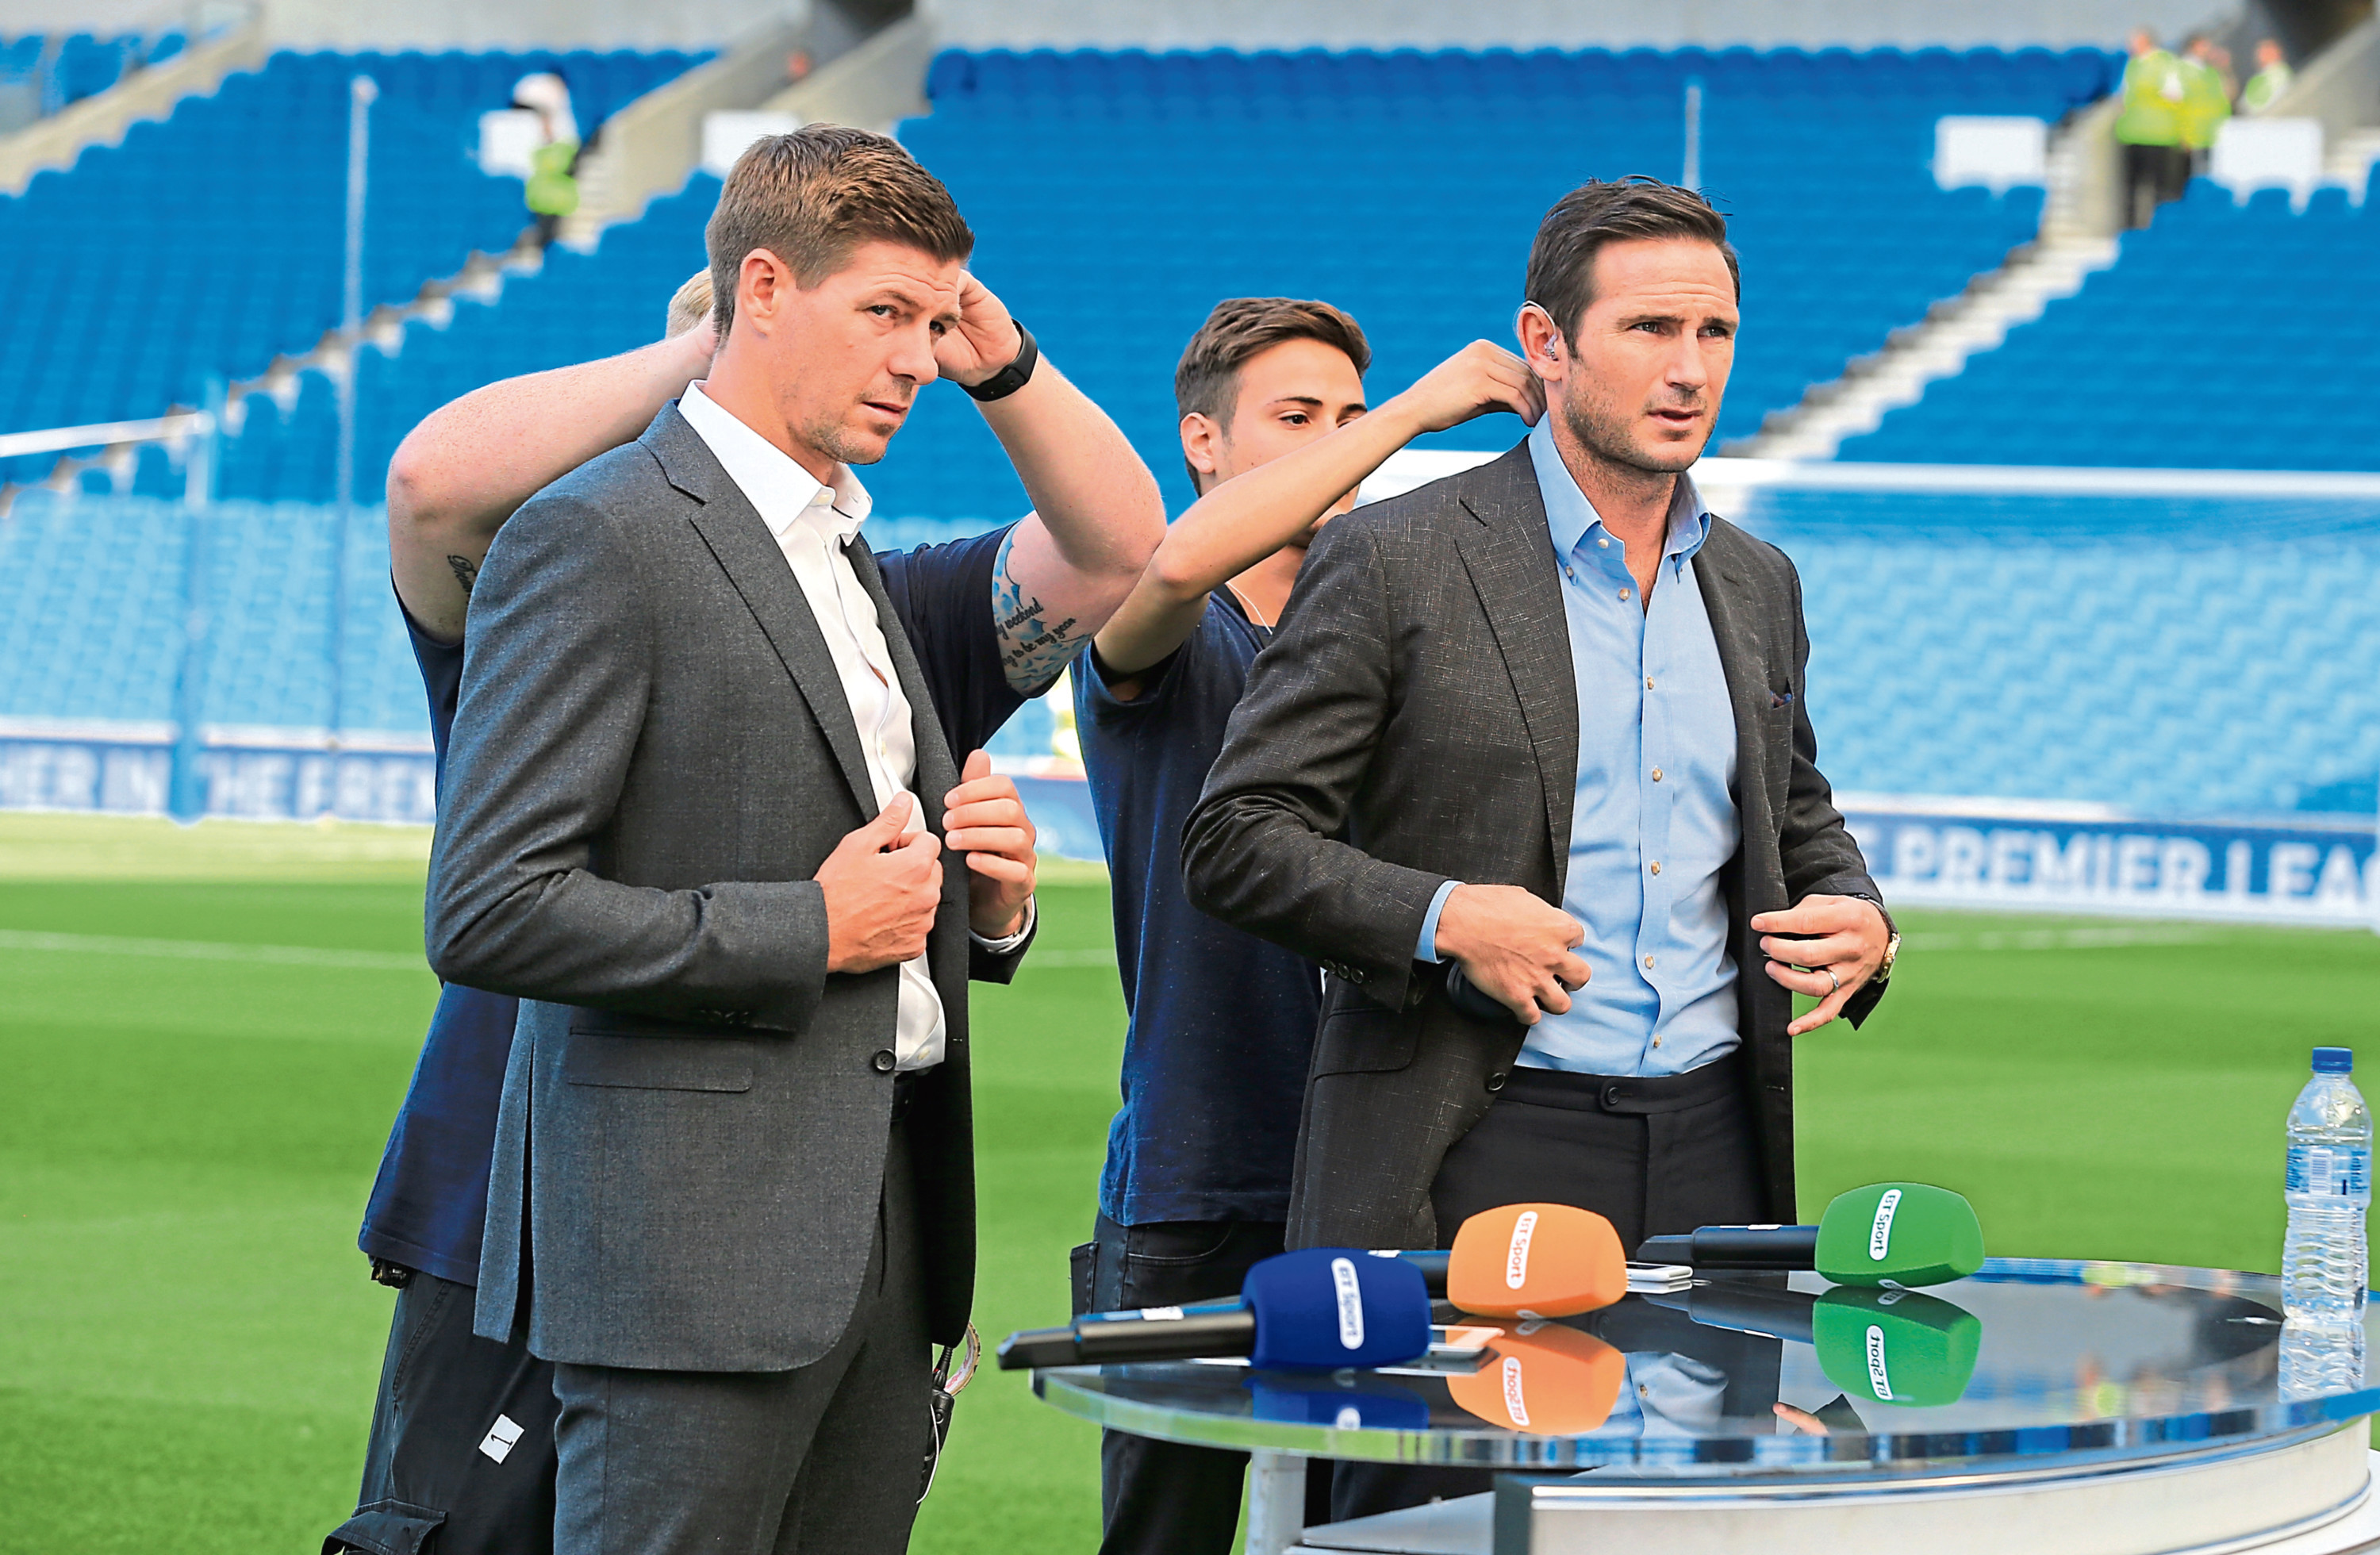 Steven Gerrard and Frank Lampard will both make their management debuts in the coming season (Gareth Fuller/PA Wire)